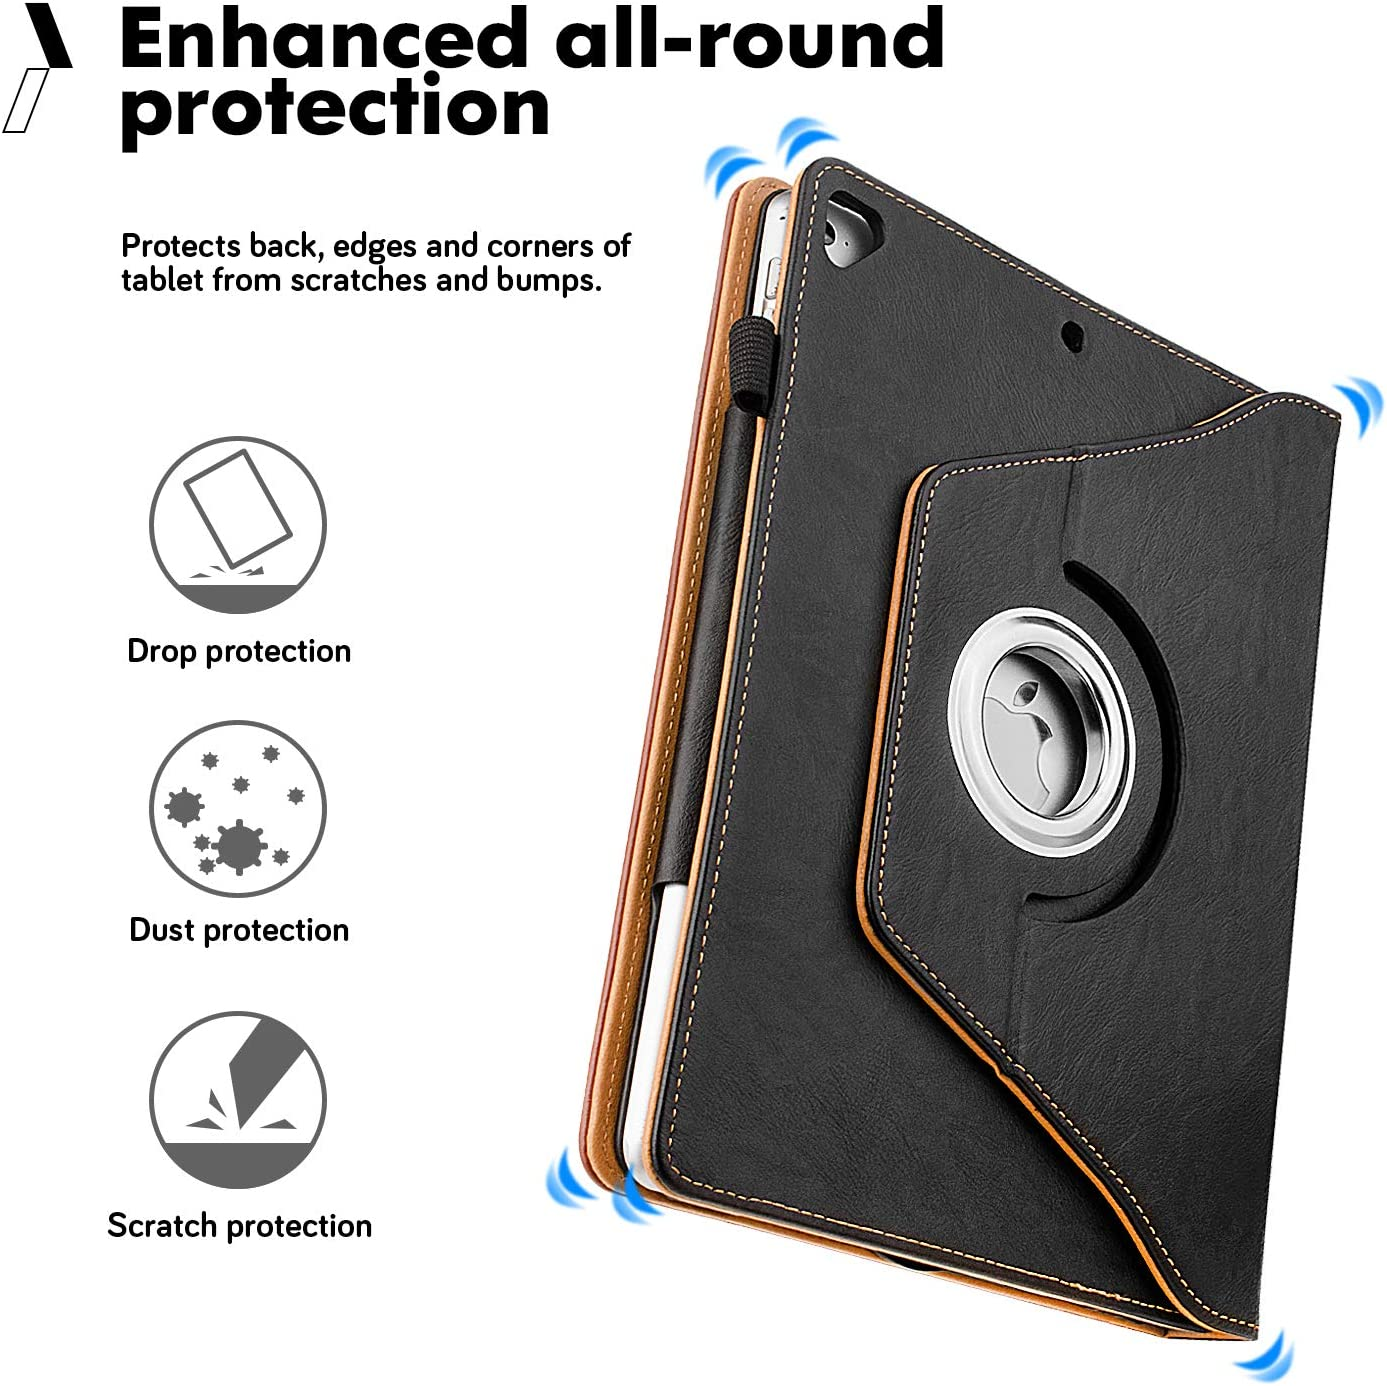 10.2-inch,2019 Releases ZoneFoker New iPad 7th Generation Tablet Leather Case Black//Brown 360 Degree Rotating Multi-Angle Viewing Folio Stand Cases with Pencil Holder for iPad 10.2 7th Gen